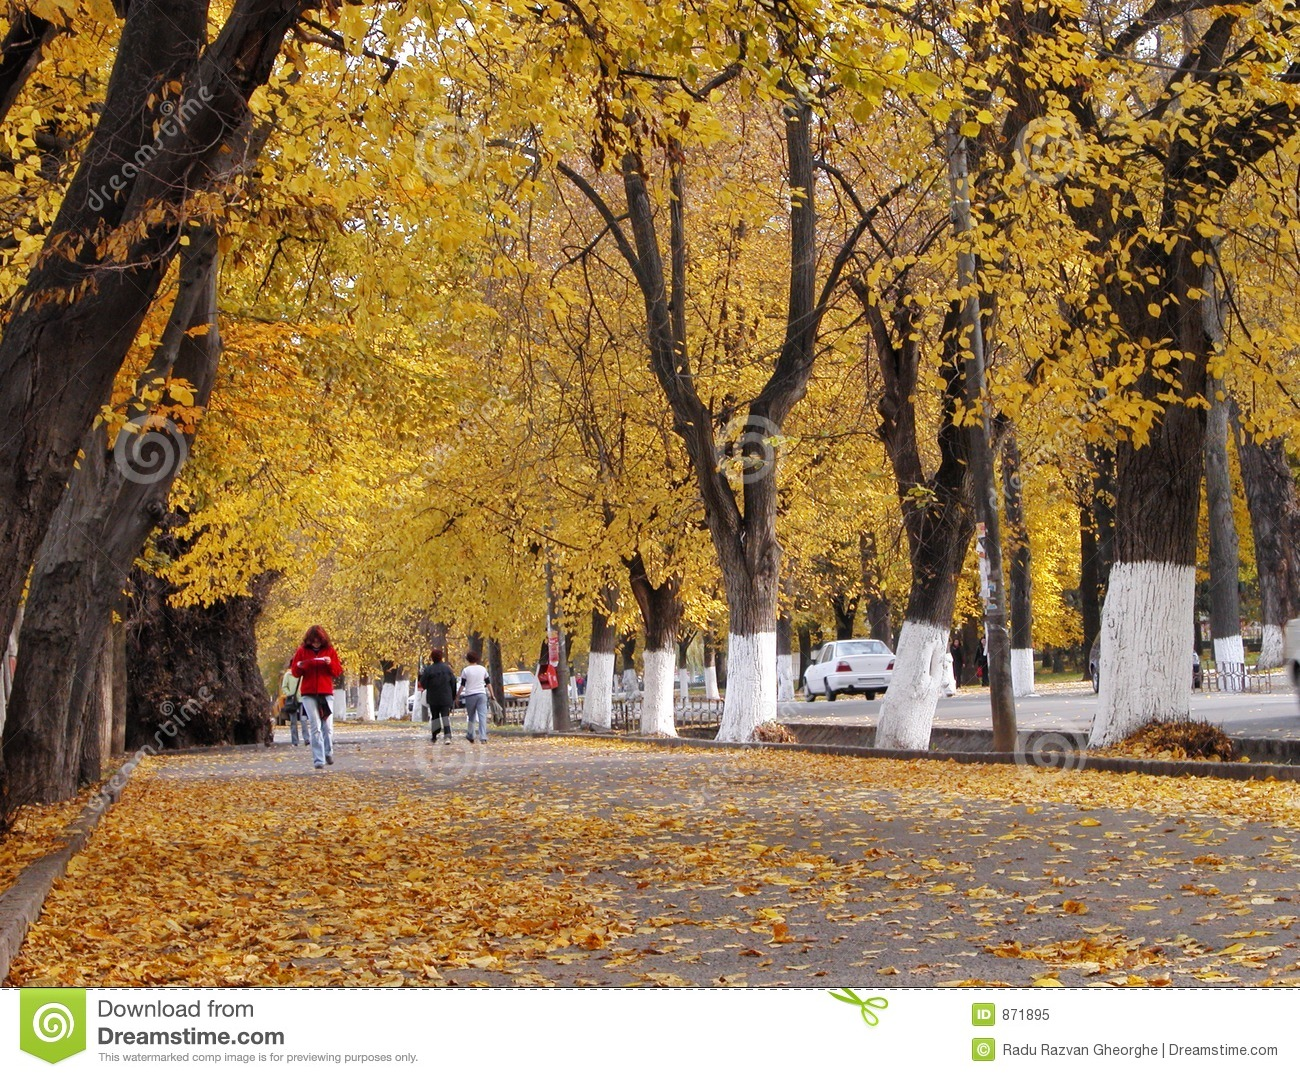 Fall Paintings Wallpaper Autumn City Street Stock Image Image Of Tree Street